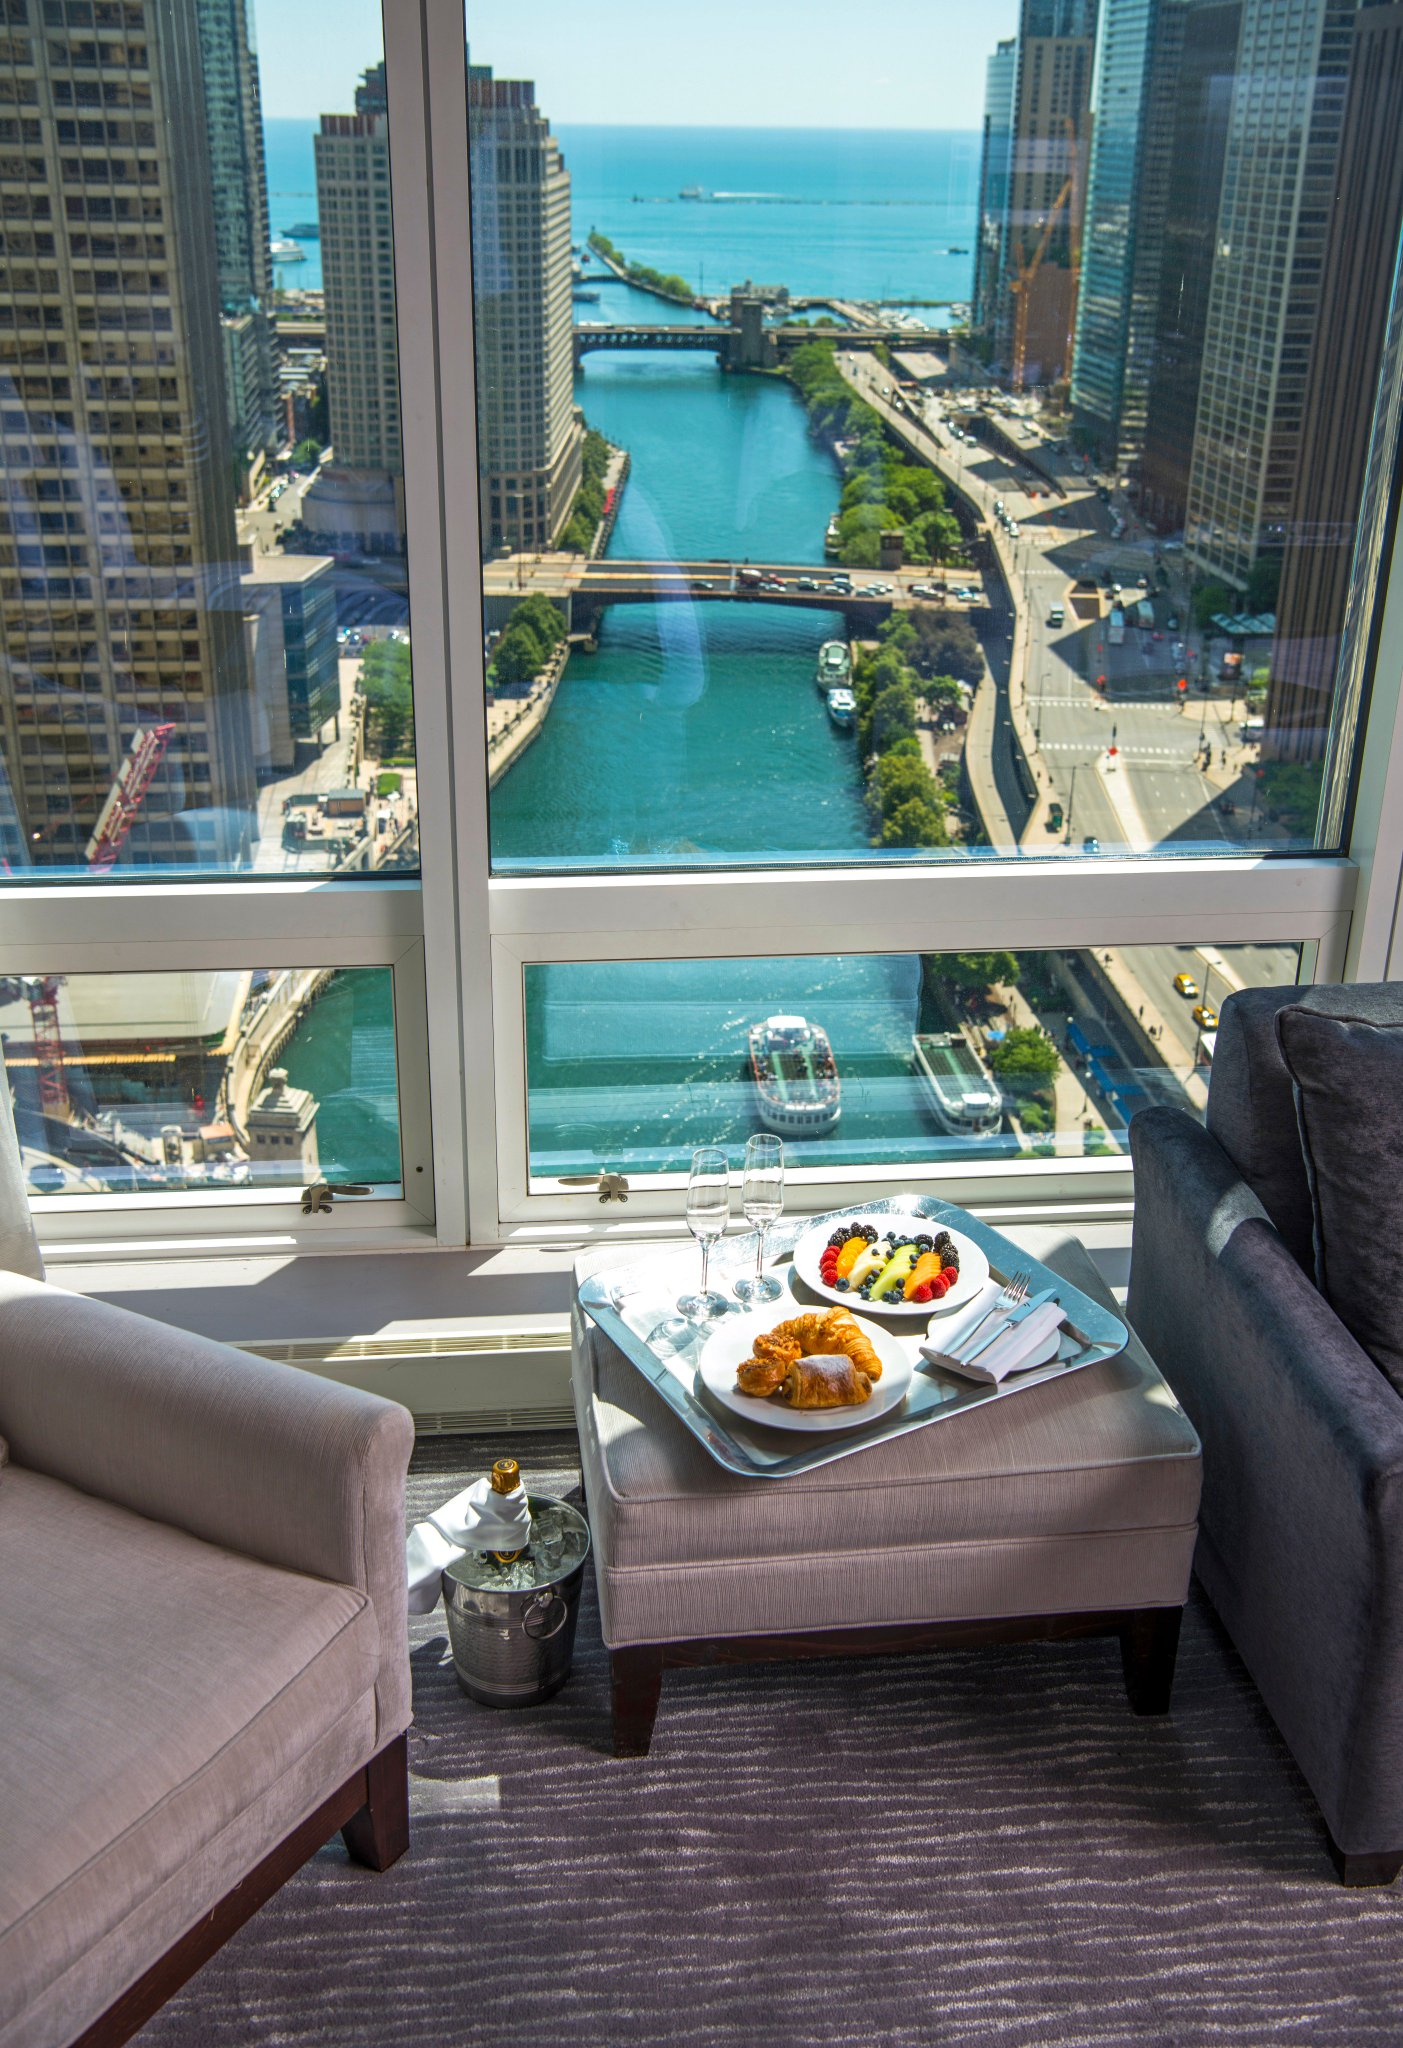 Breakfast with a side of views @TrumpChicago https://t.co/edMFQoJPP0 https://t.co/EH0vqRFTZH